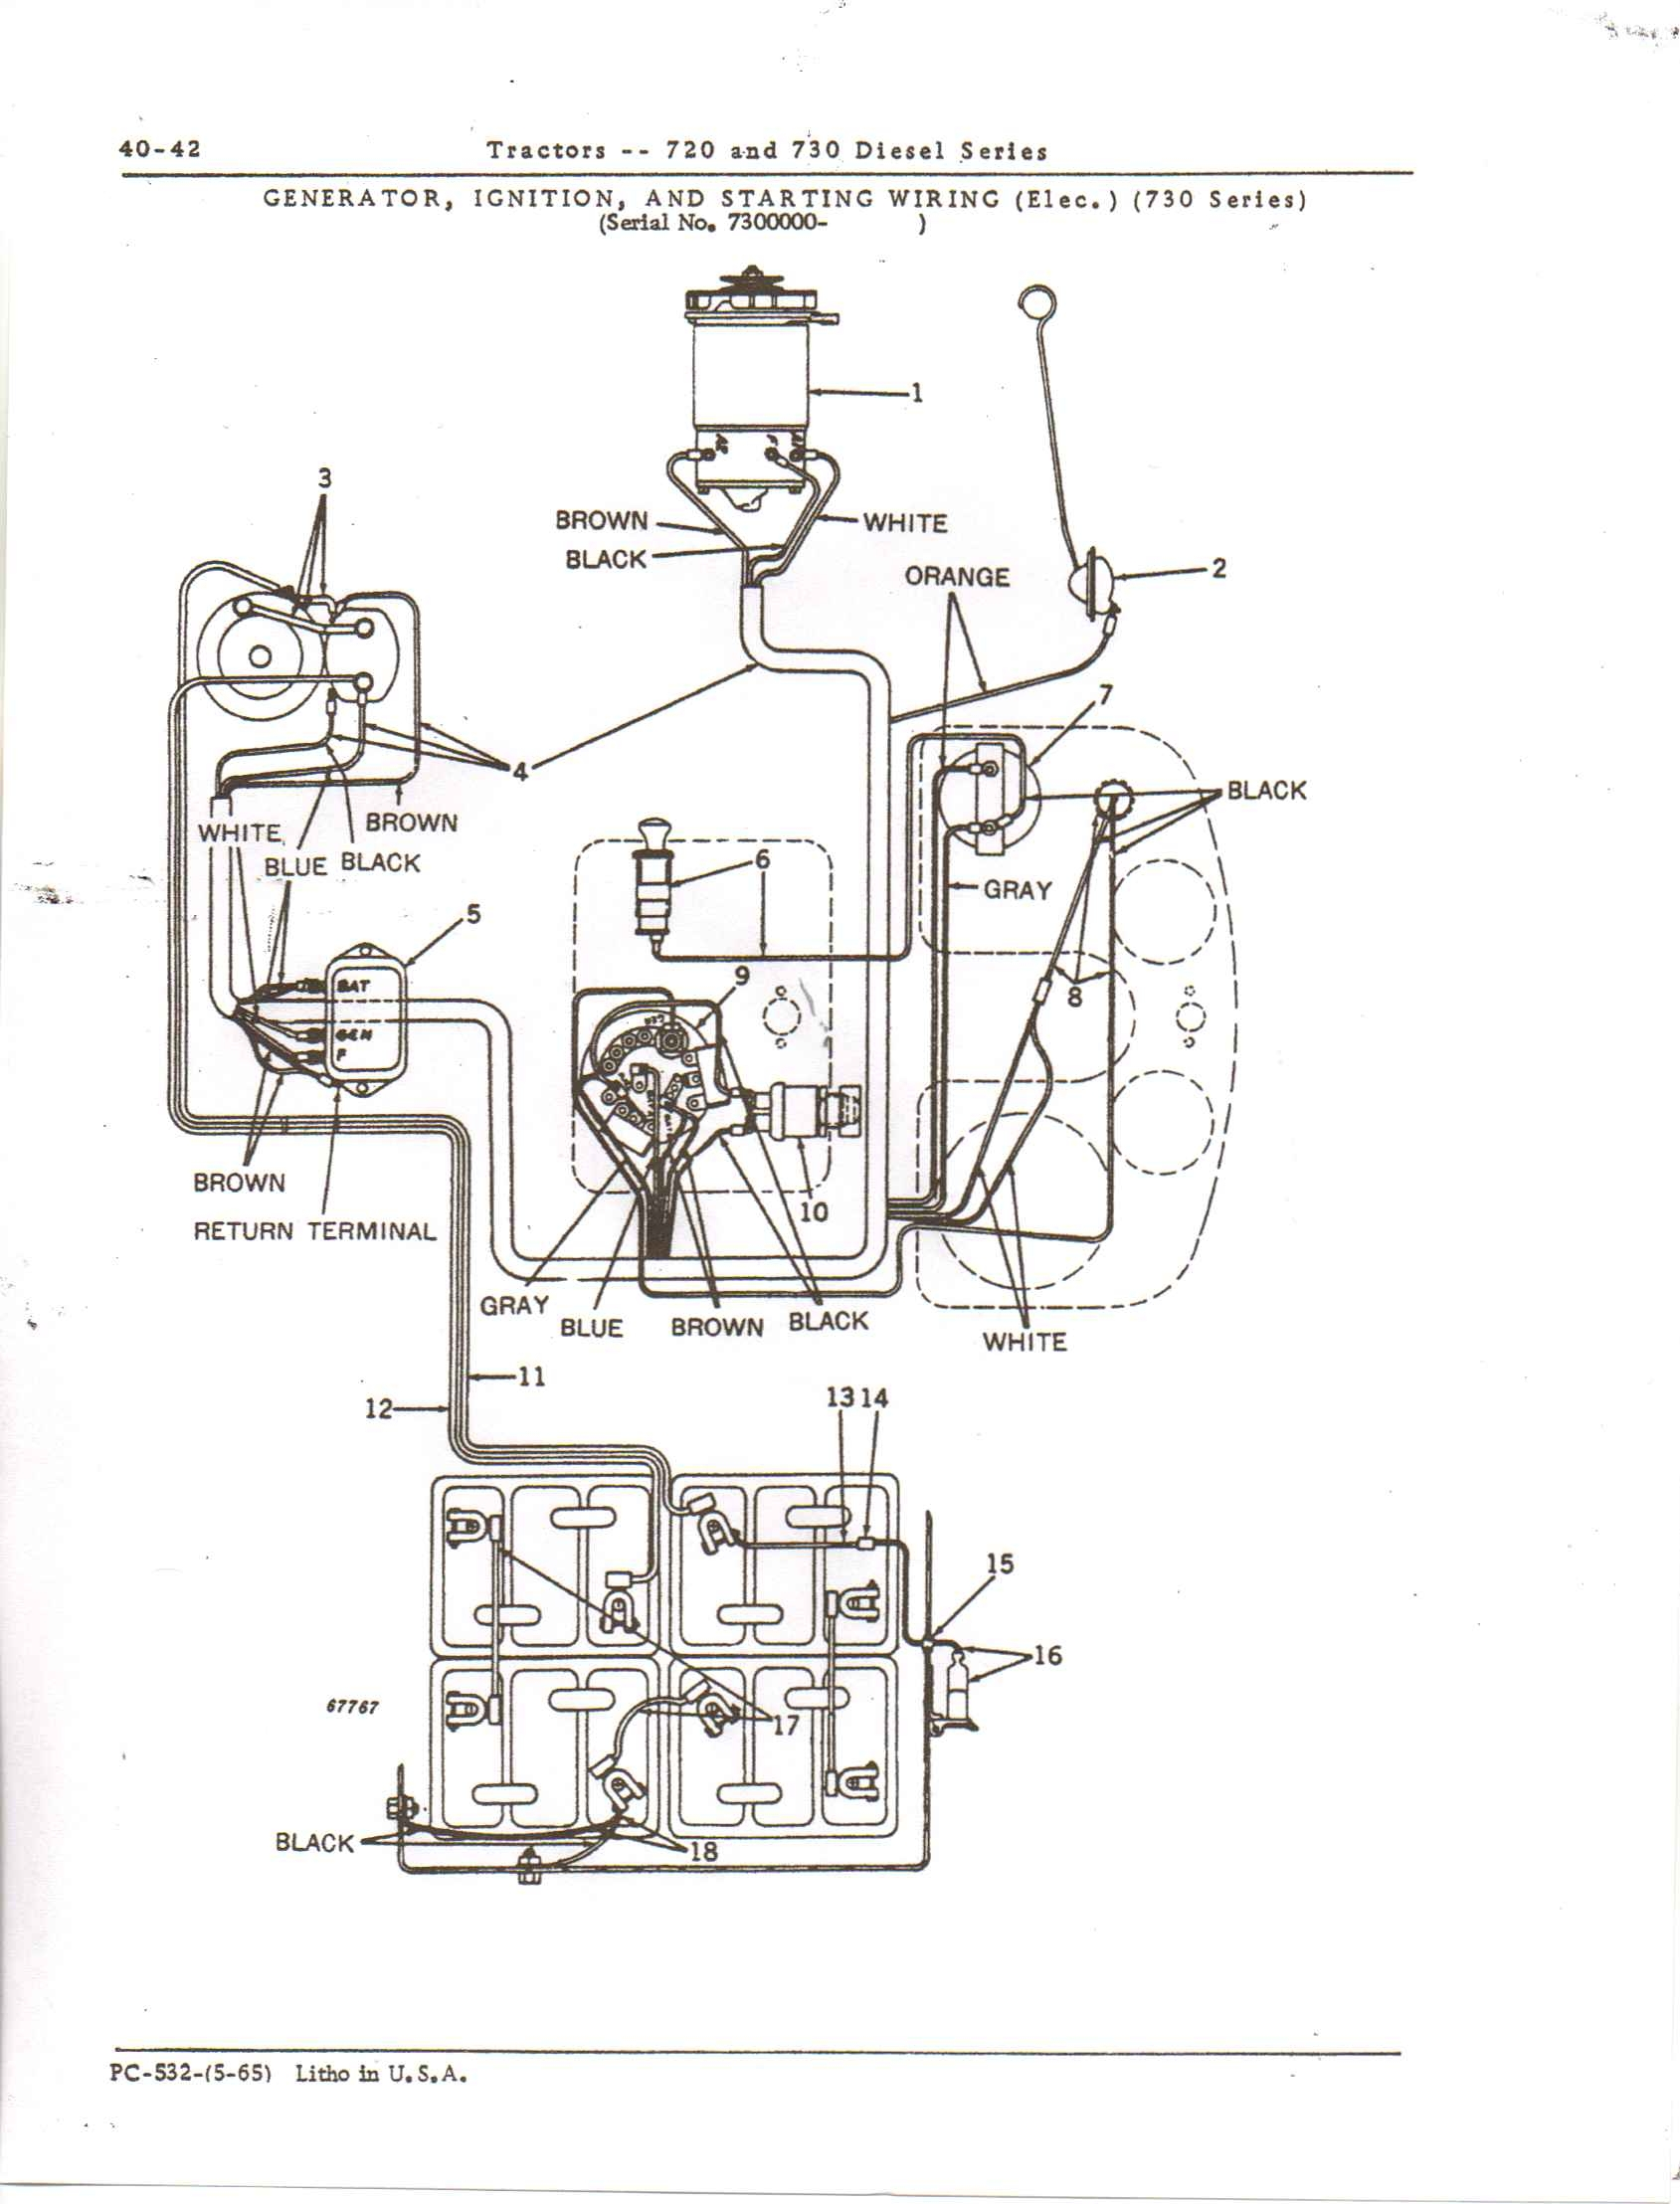 john deere wiring diagram for lt133